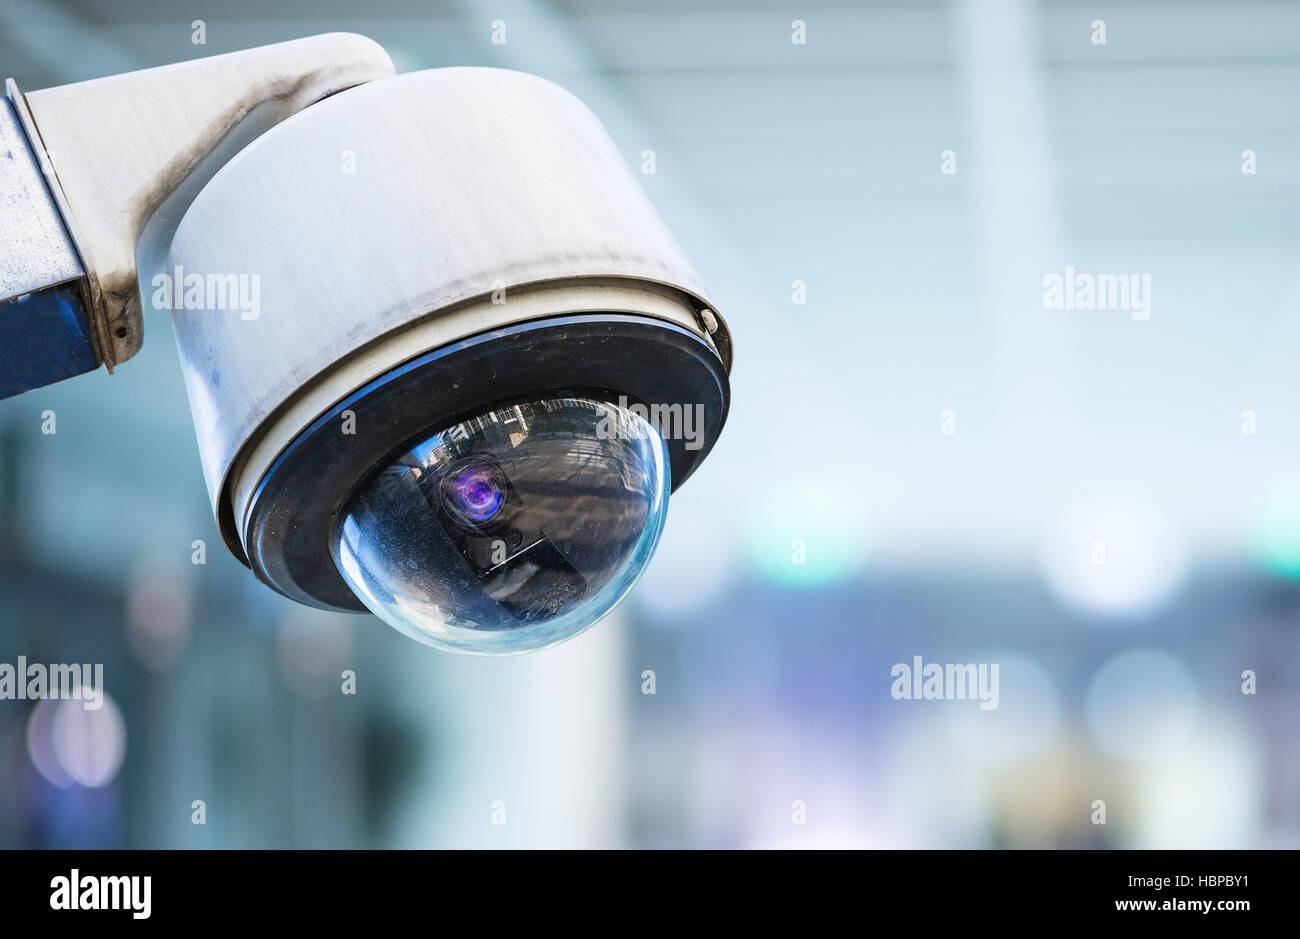 CCTV security camera with blurred background - Stock Image